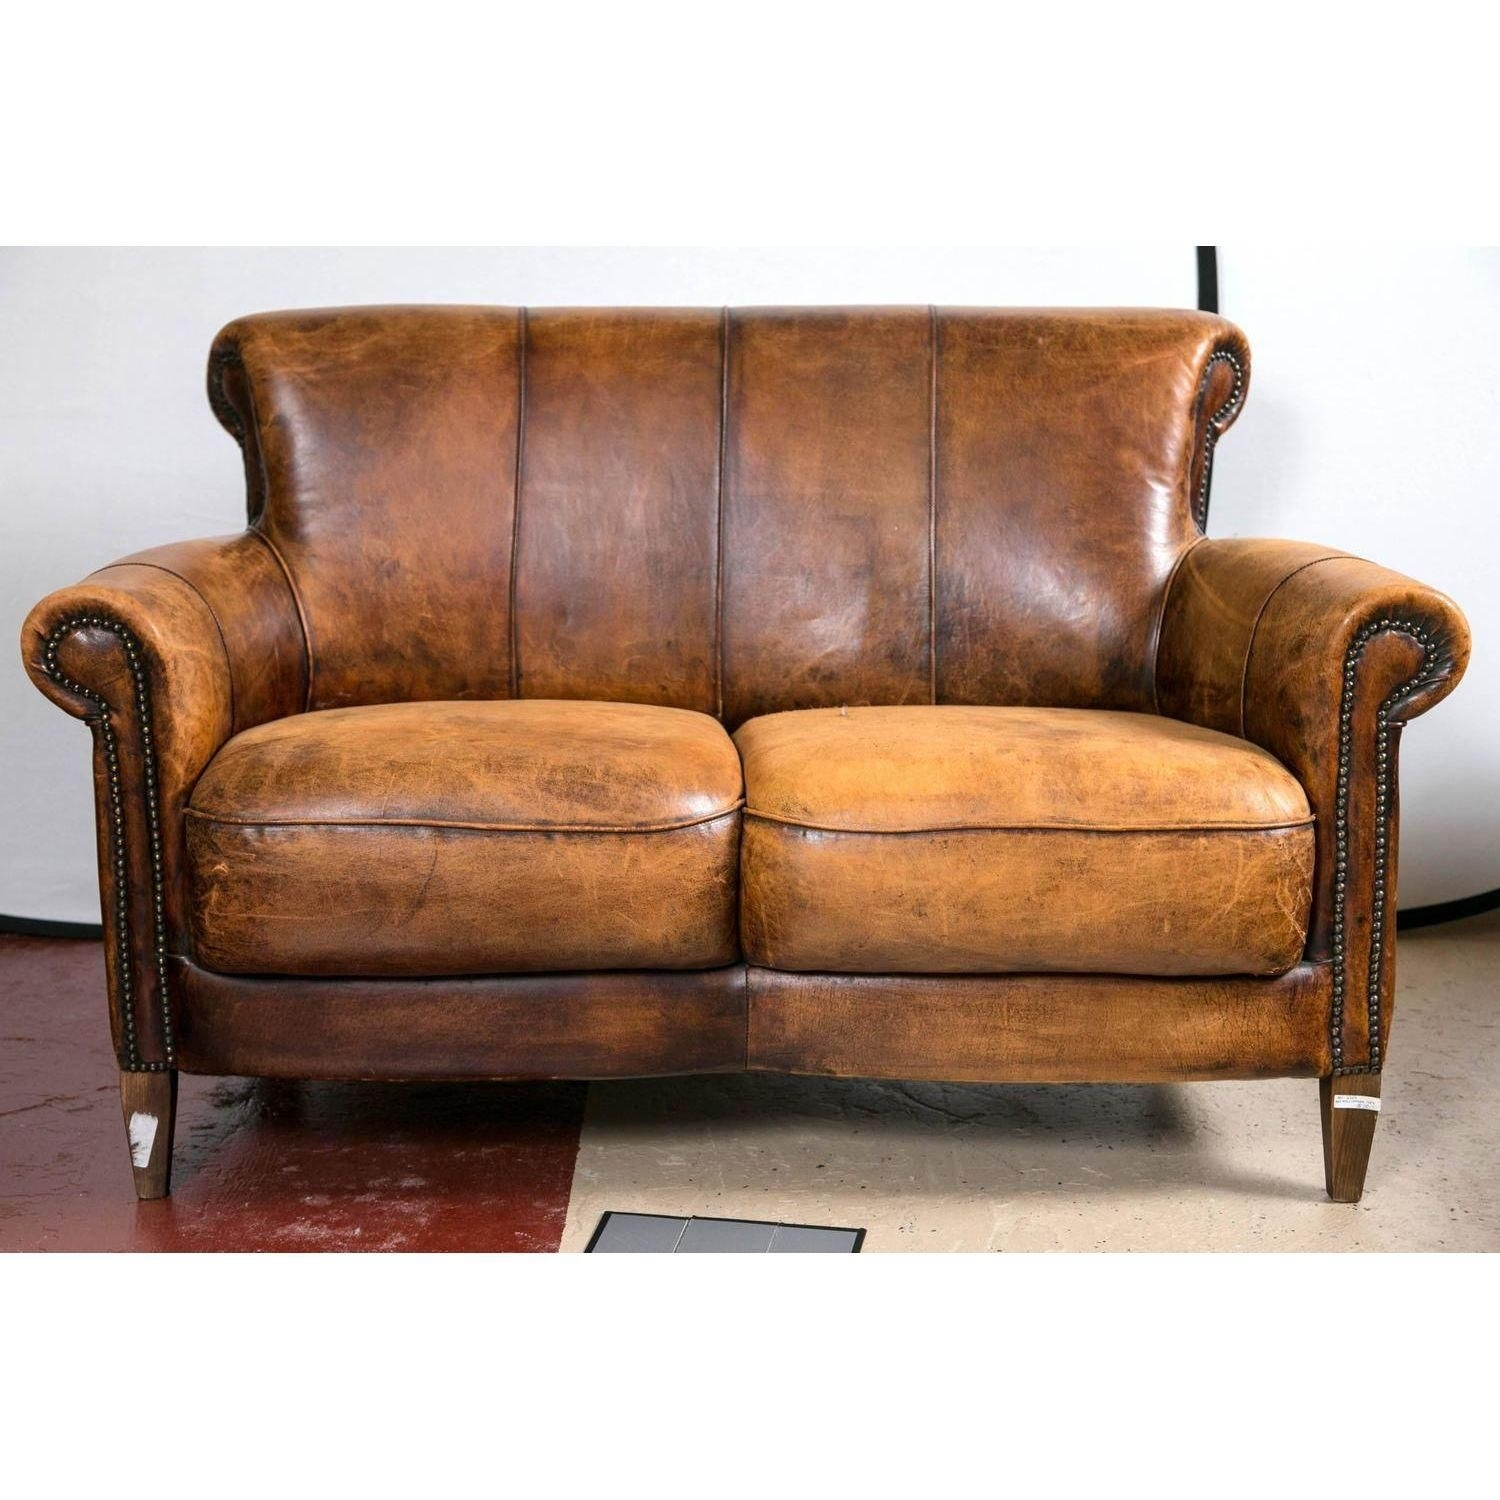 Vintage French Distressed Art Deco Leather Sofa | Leather Sofas, Art inside Art Deco Sofas (Image 10 of 10)